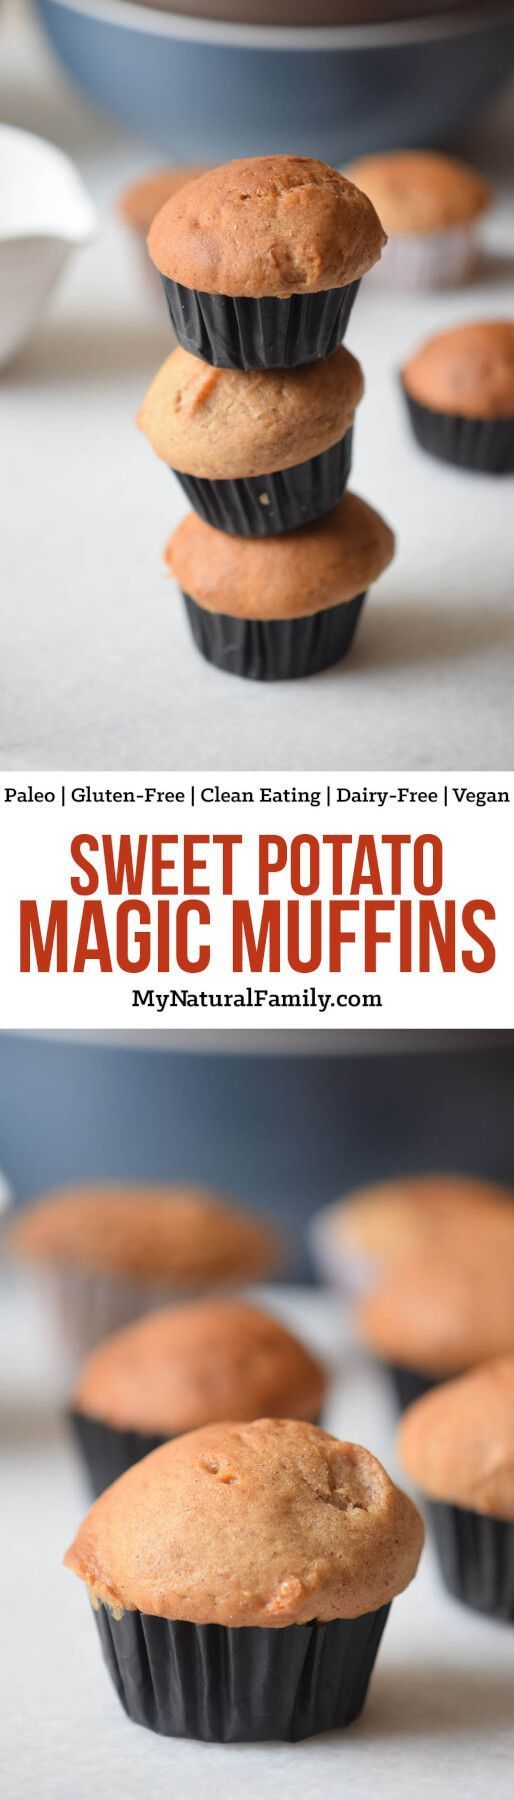 There are no flours at all in these flourless sweet potato muffins. Just sweet potato, eggs, honey, coconut, water and cinnamon. Seriously. They are like magic! They are Paleo, Gluten-Free, Clean Eating, Dairy-Free and Vegan too.